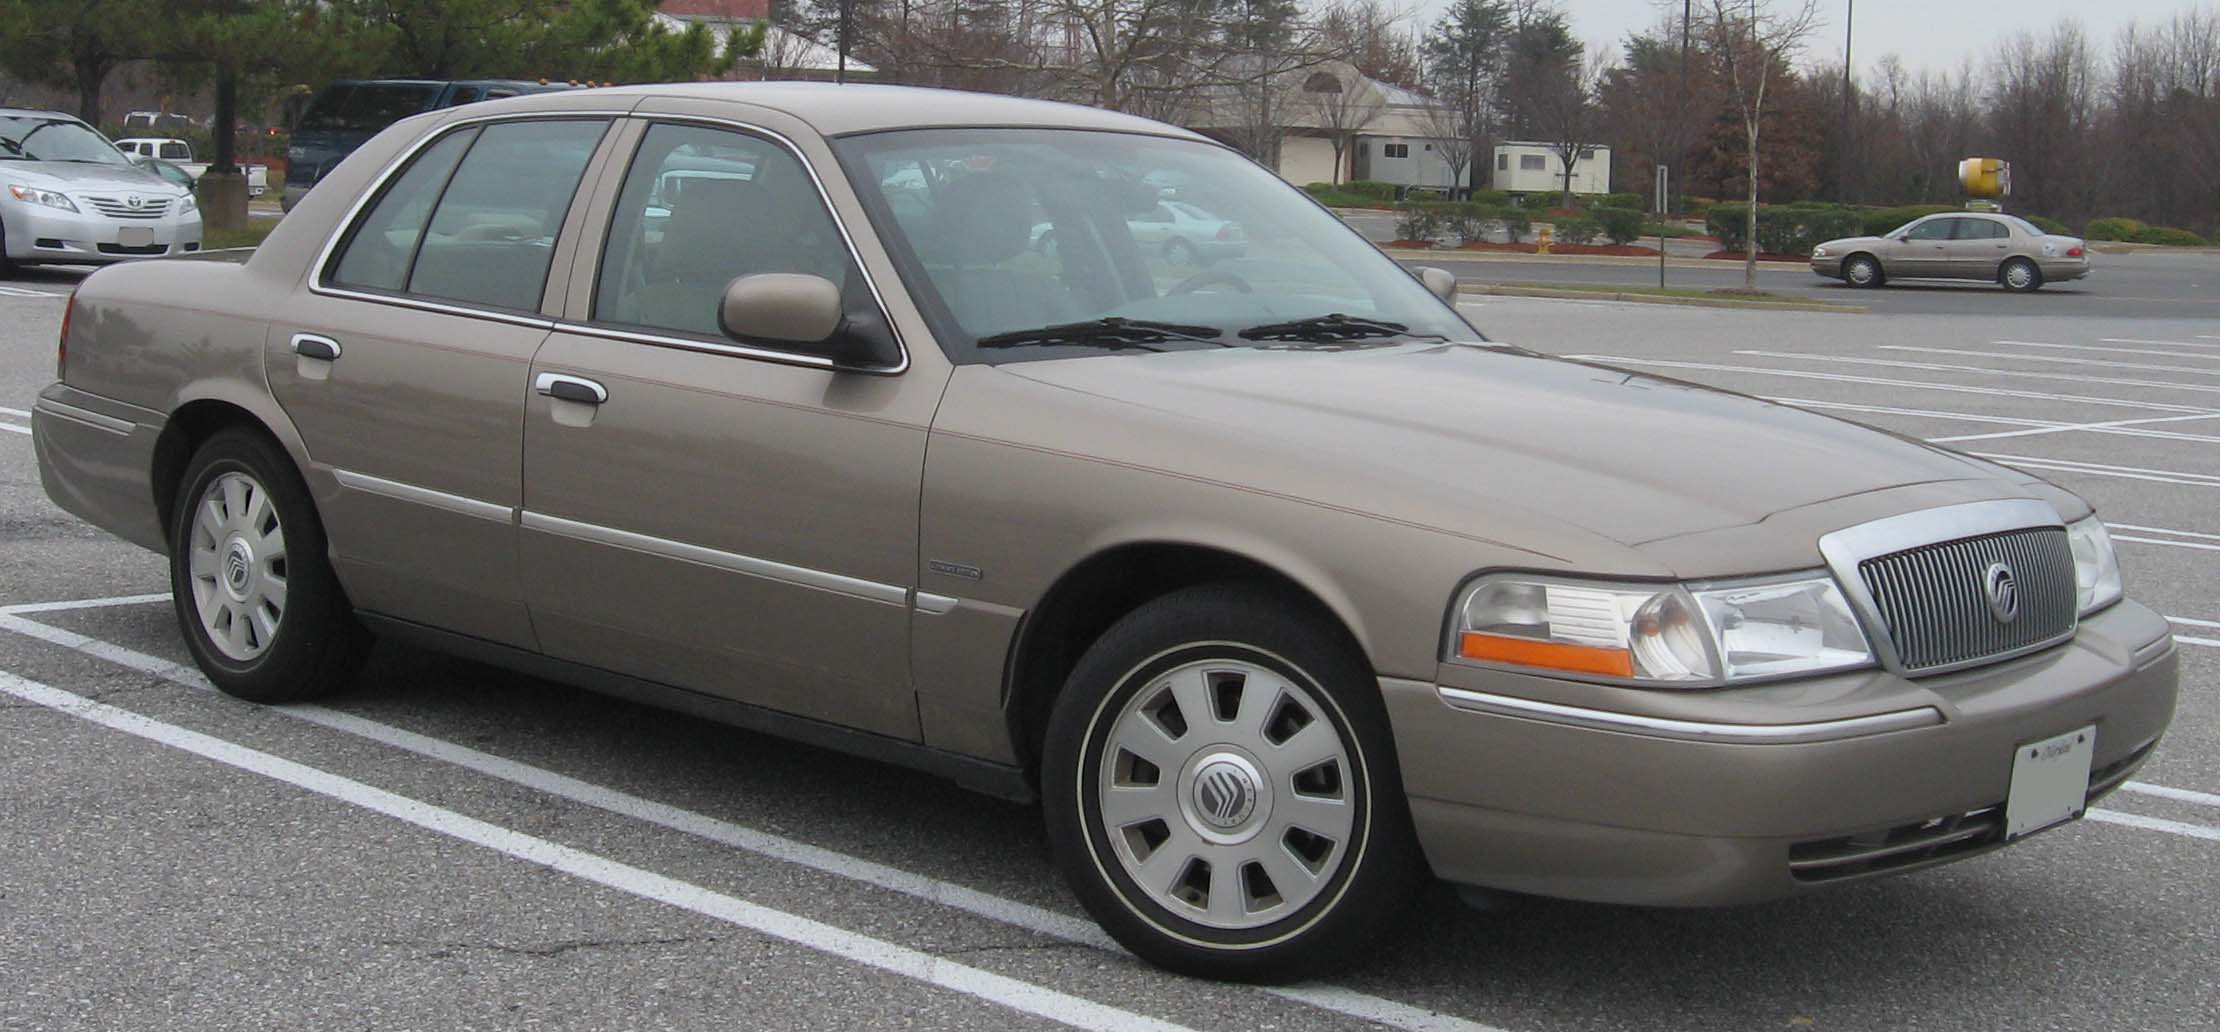 2003 Mercury Grand Marquis #1